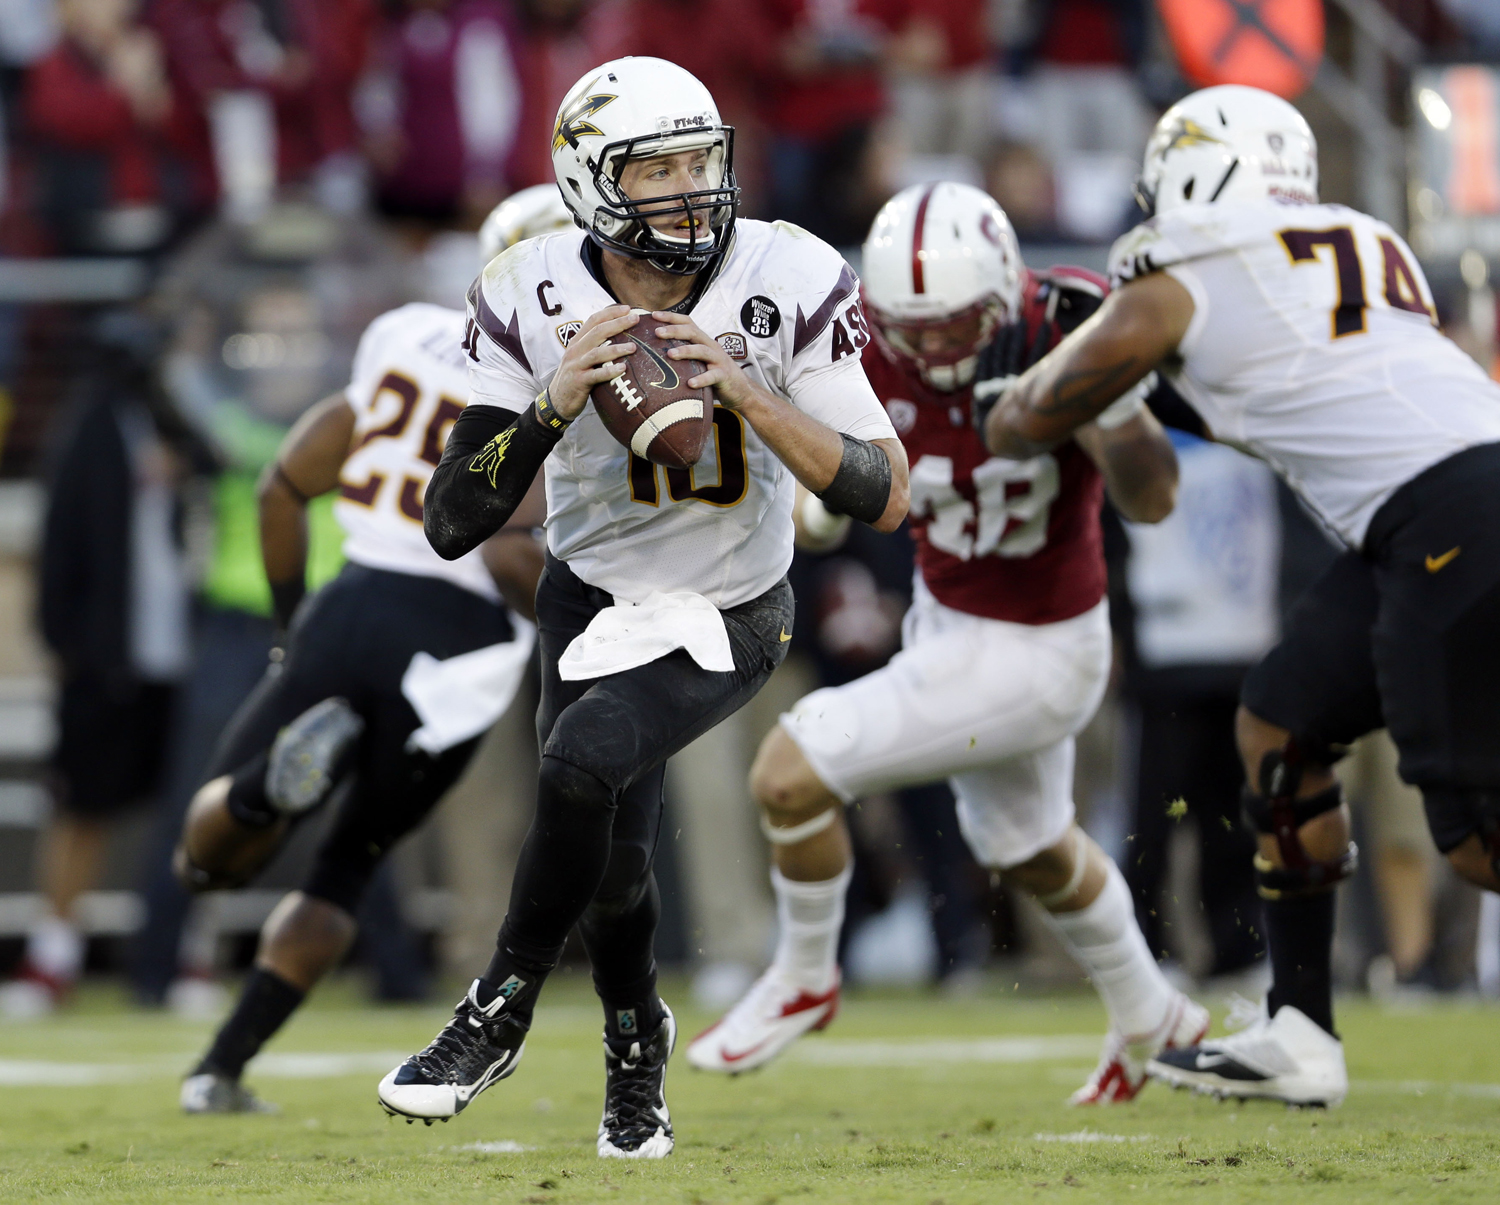 Arizona State quarterback Taylor Kelly during the second half of an NCAA college football game against Stanford in Stanford, Calif. Stanford won 42-28. (Marcio Jose Sanchez/Associated Press)